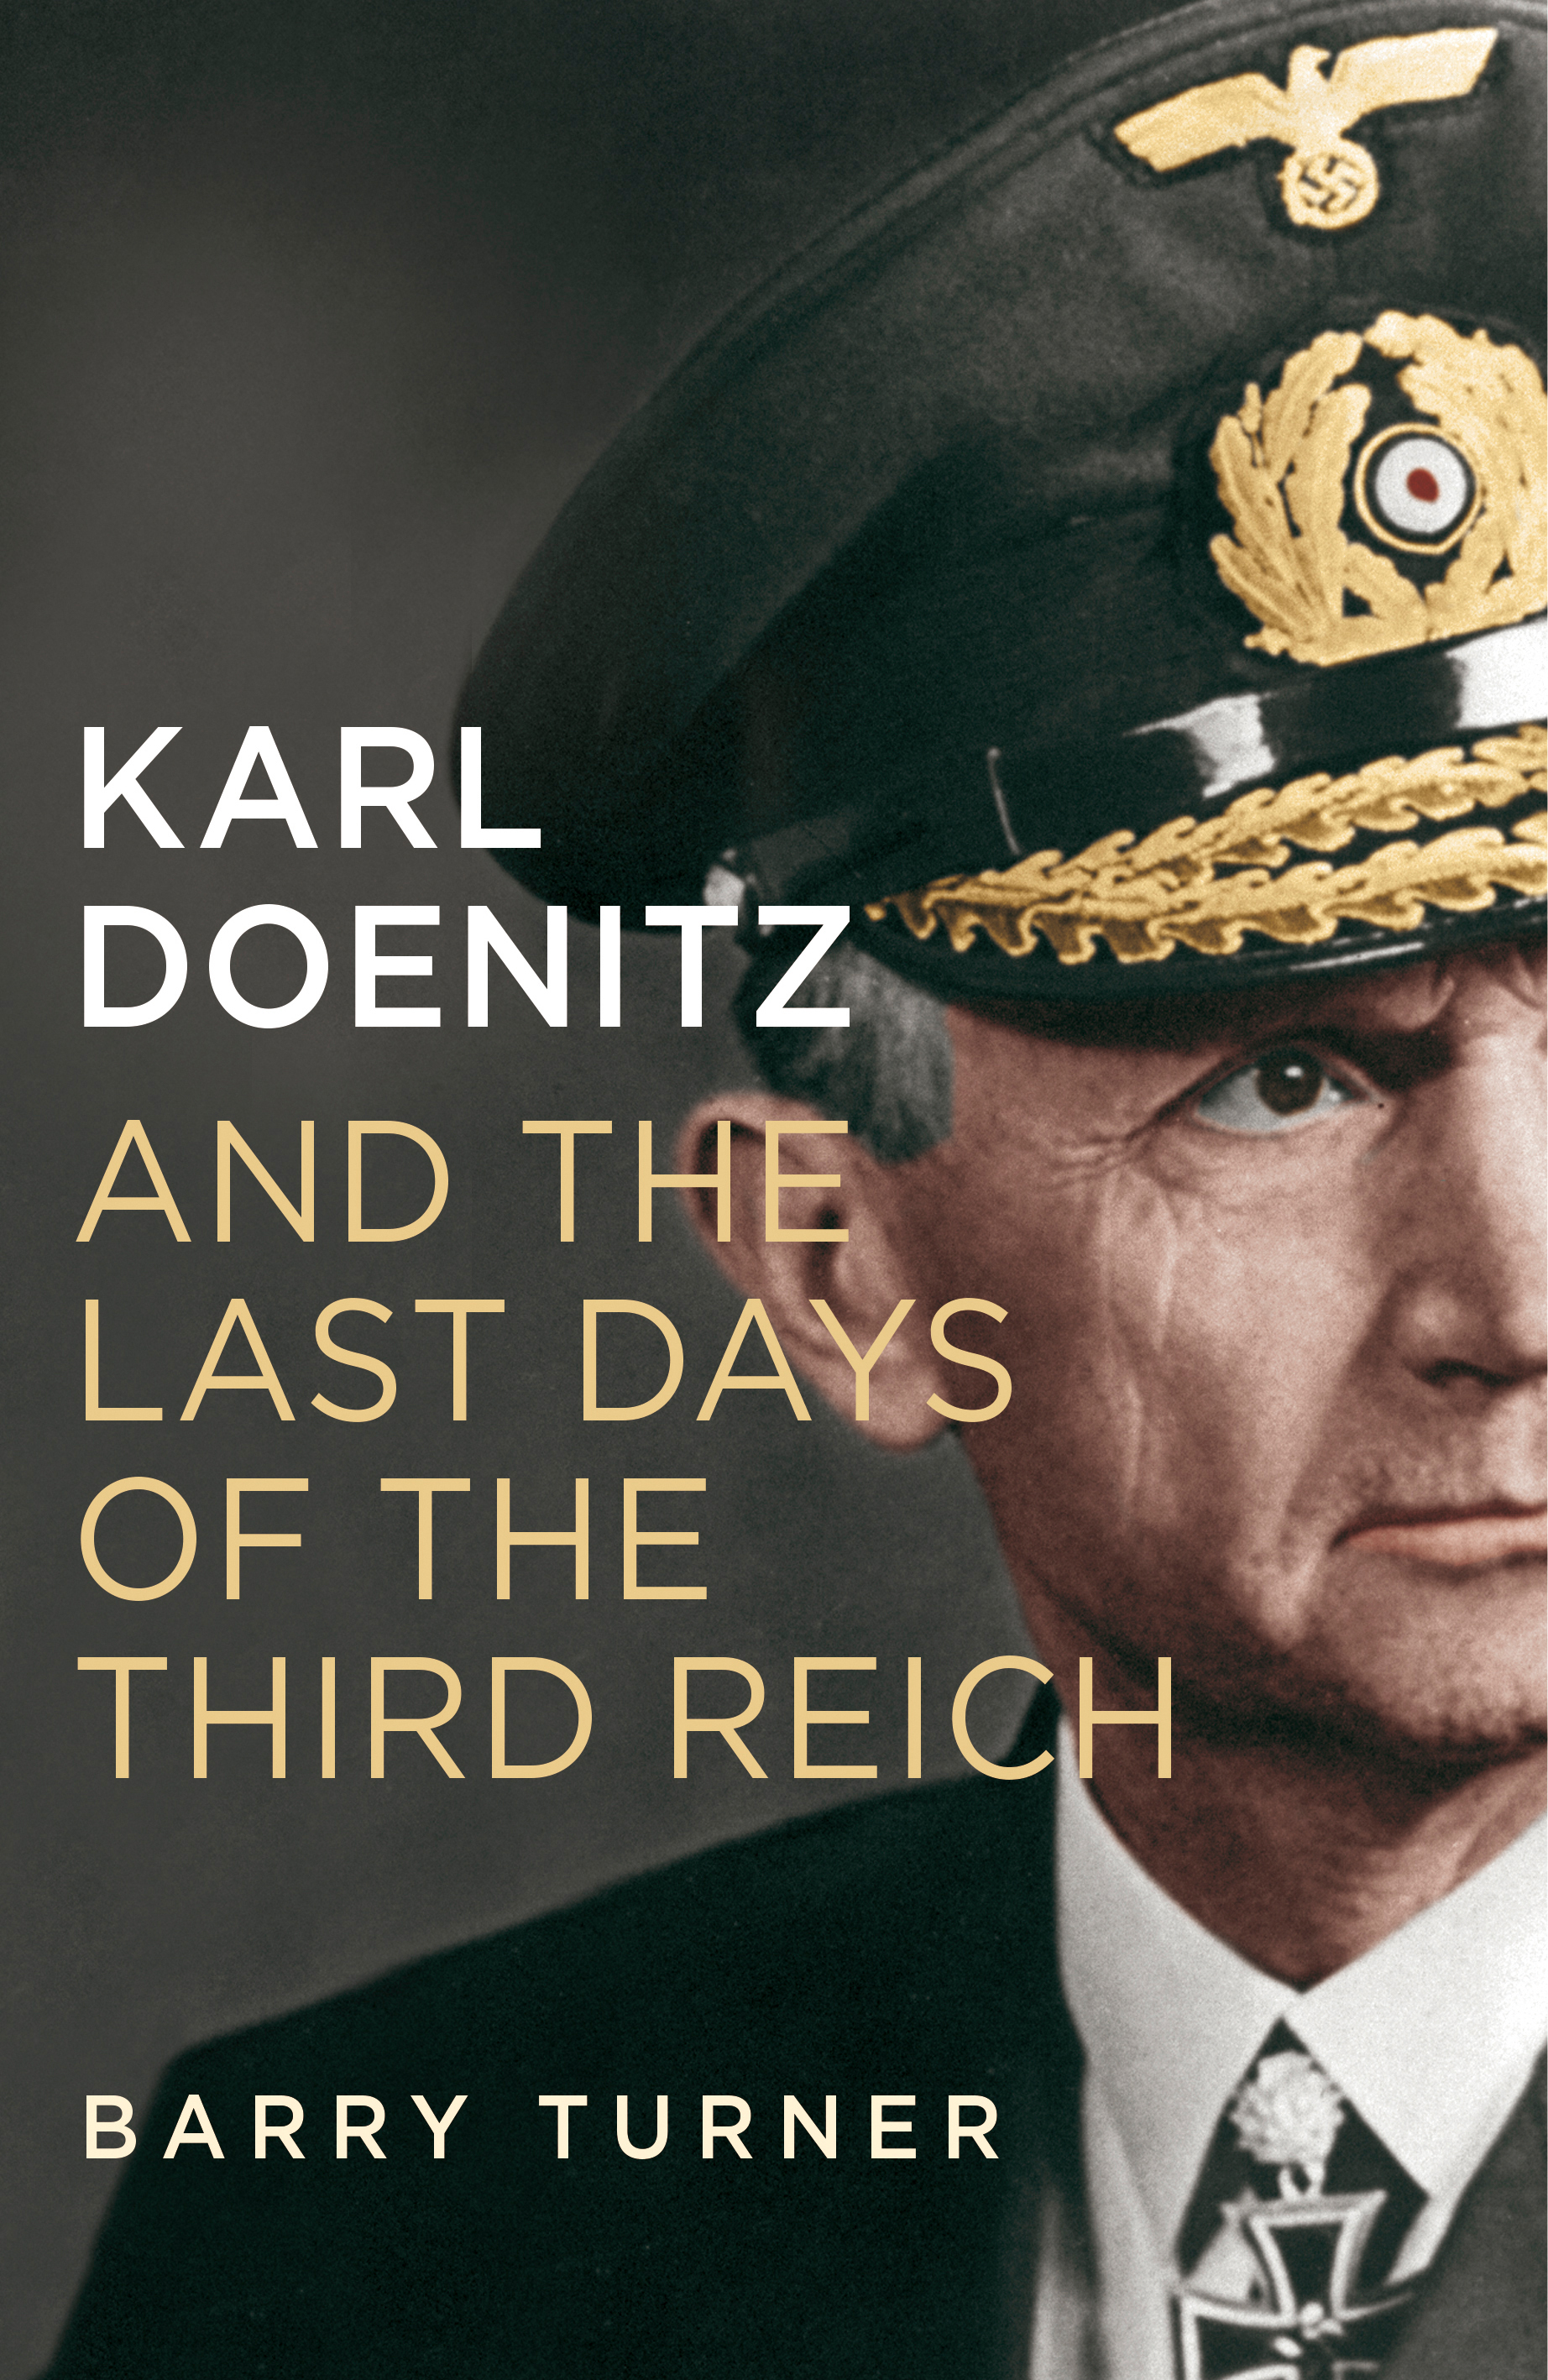 Admiral Doenitz: From Hitlerite to Hero? ⋆ WW2 Reads